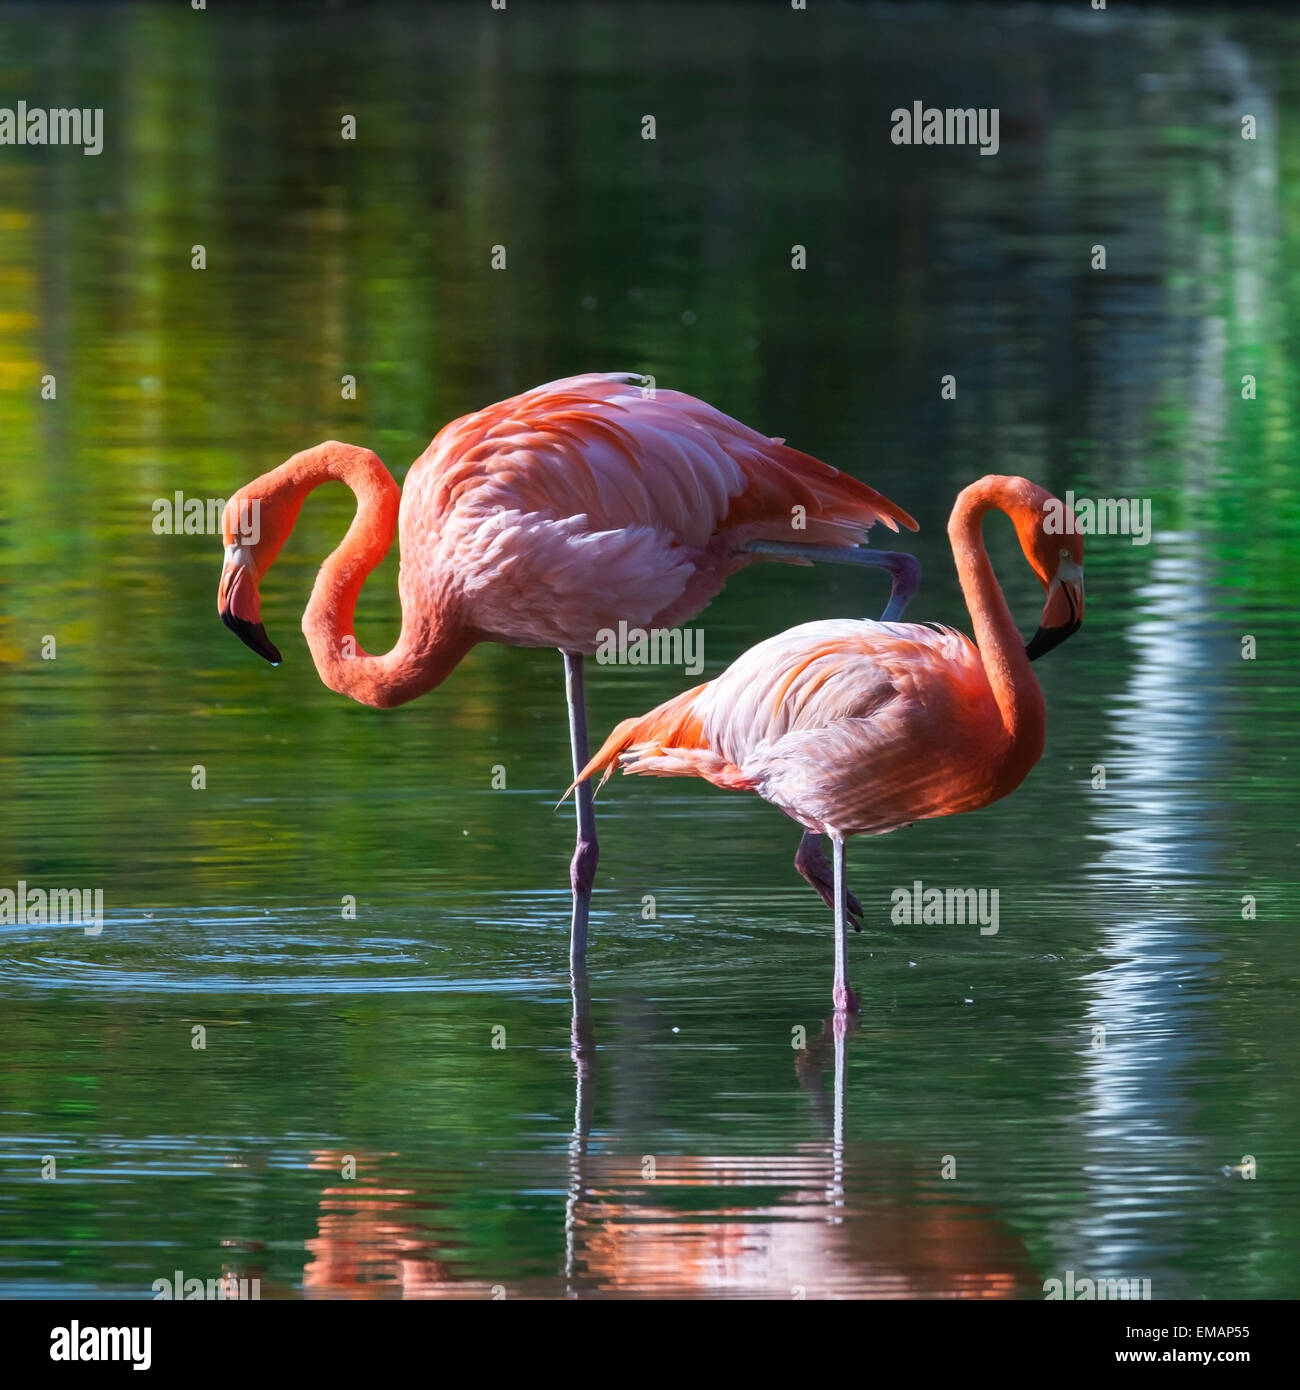 Two pink flamingos stand in the water with reflections. Stylized square photo, with colorful tonal correction filter - Stock Image